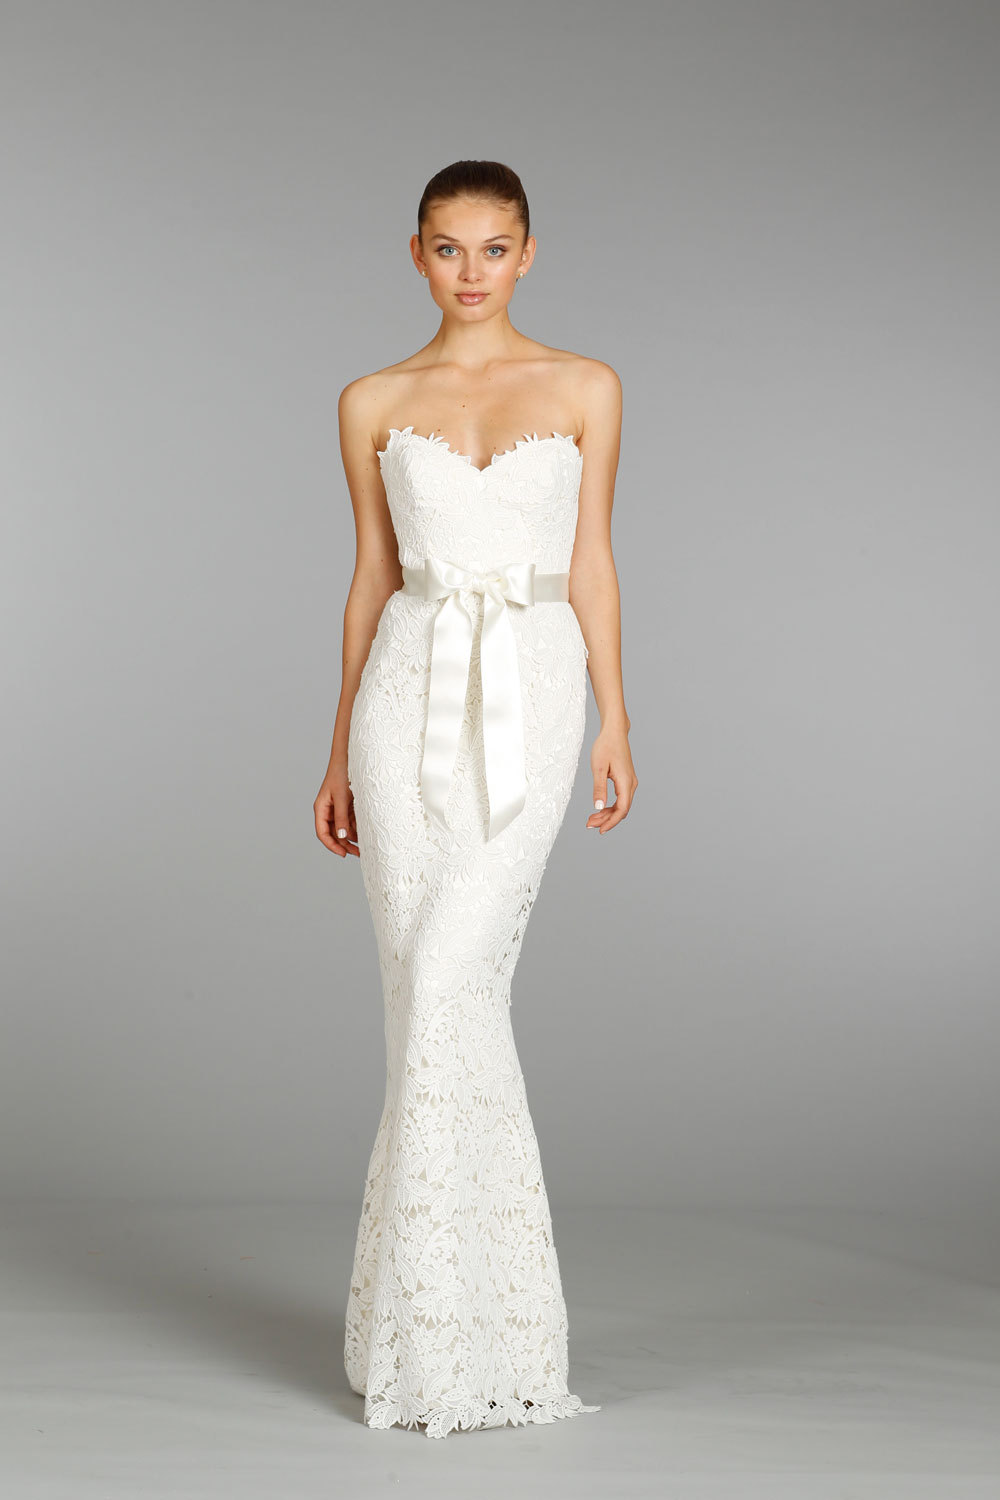 Lazaro wedding dress fall 2013 bridal 3357 for Where to buy lazaro wedding dresses